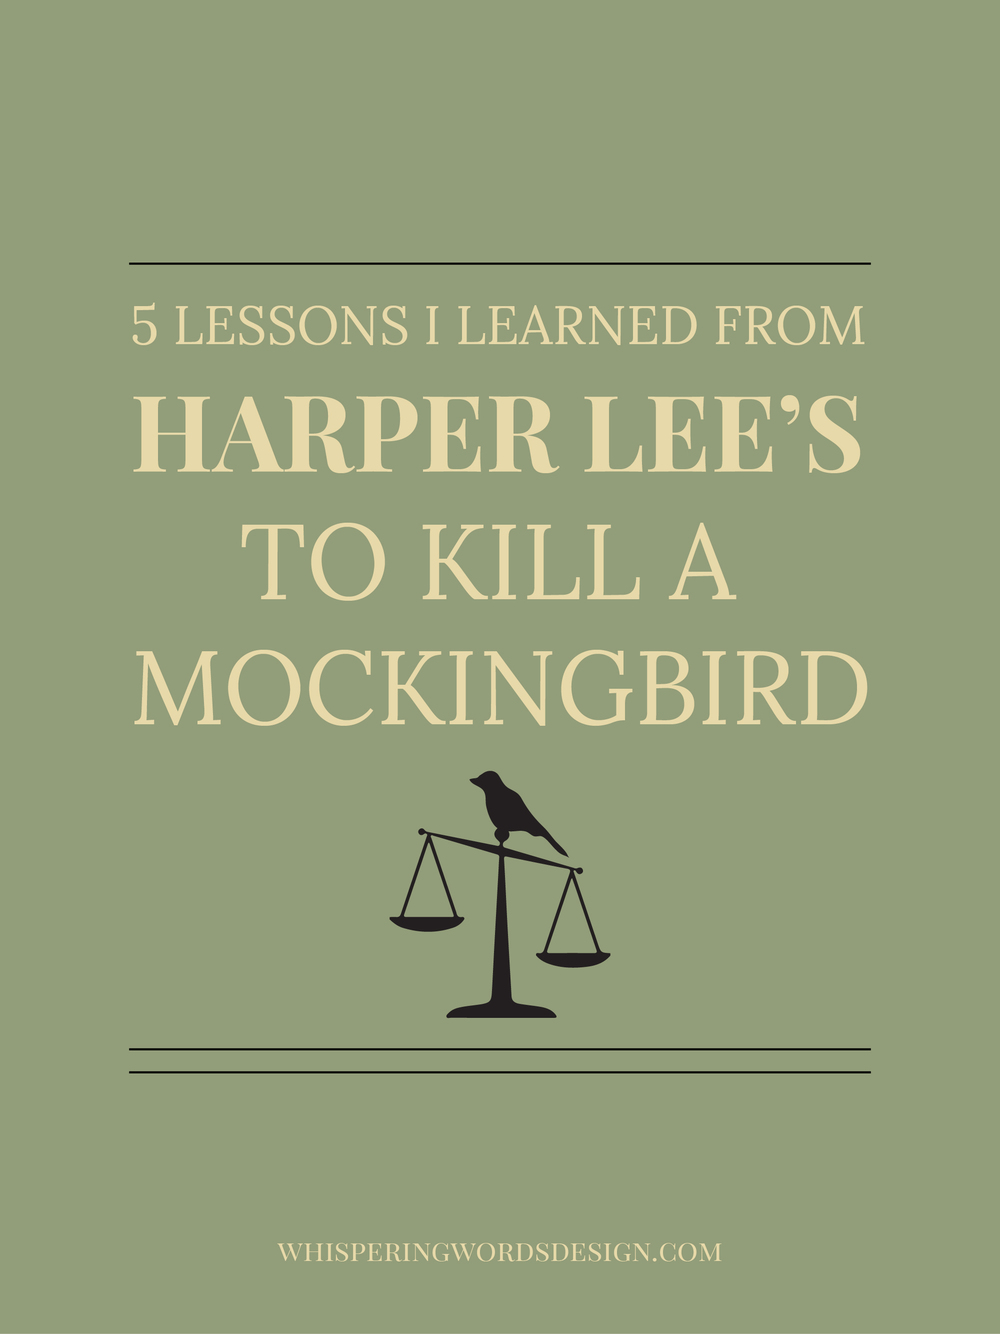 to kill a mockingbird lessons A summary of lessons learnt in the first two chapters of to kill a mockingbird.